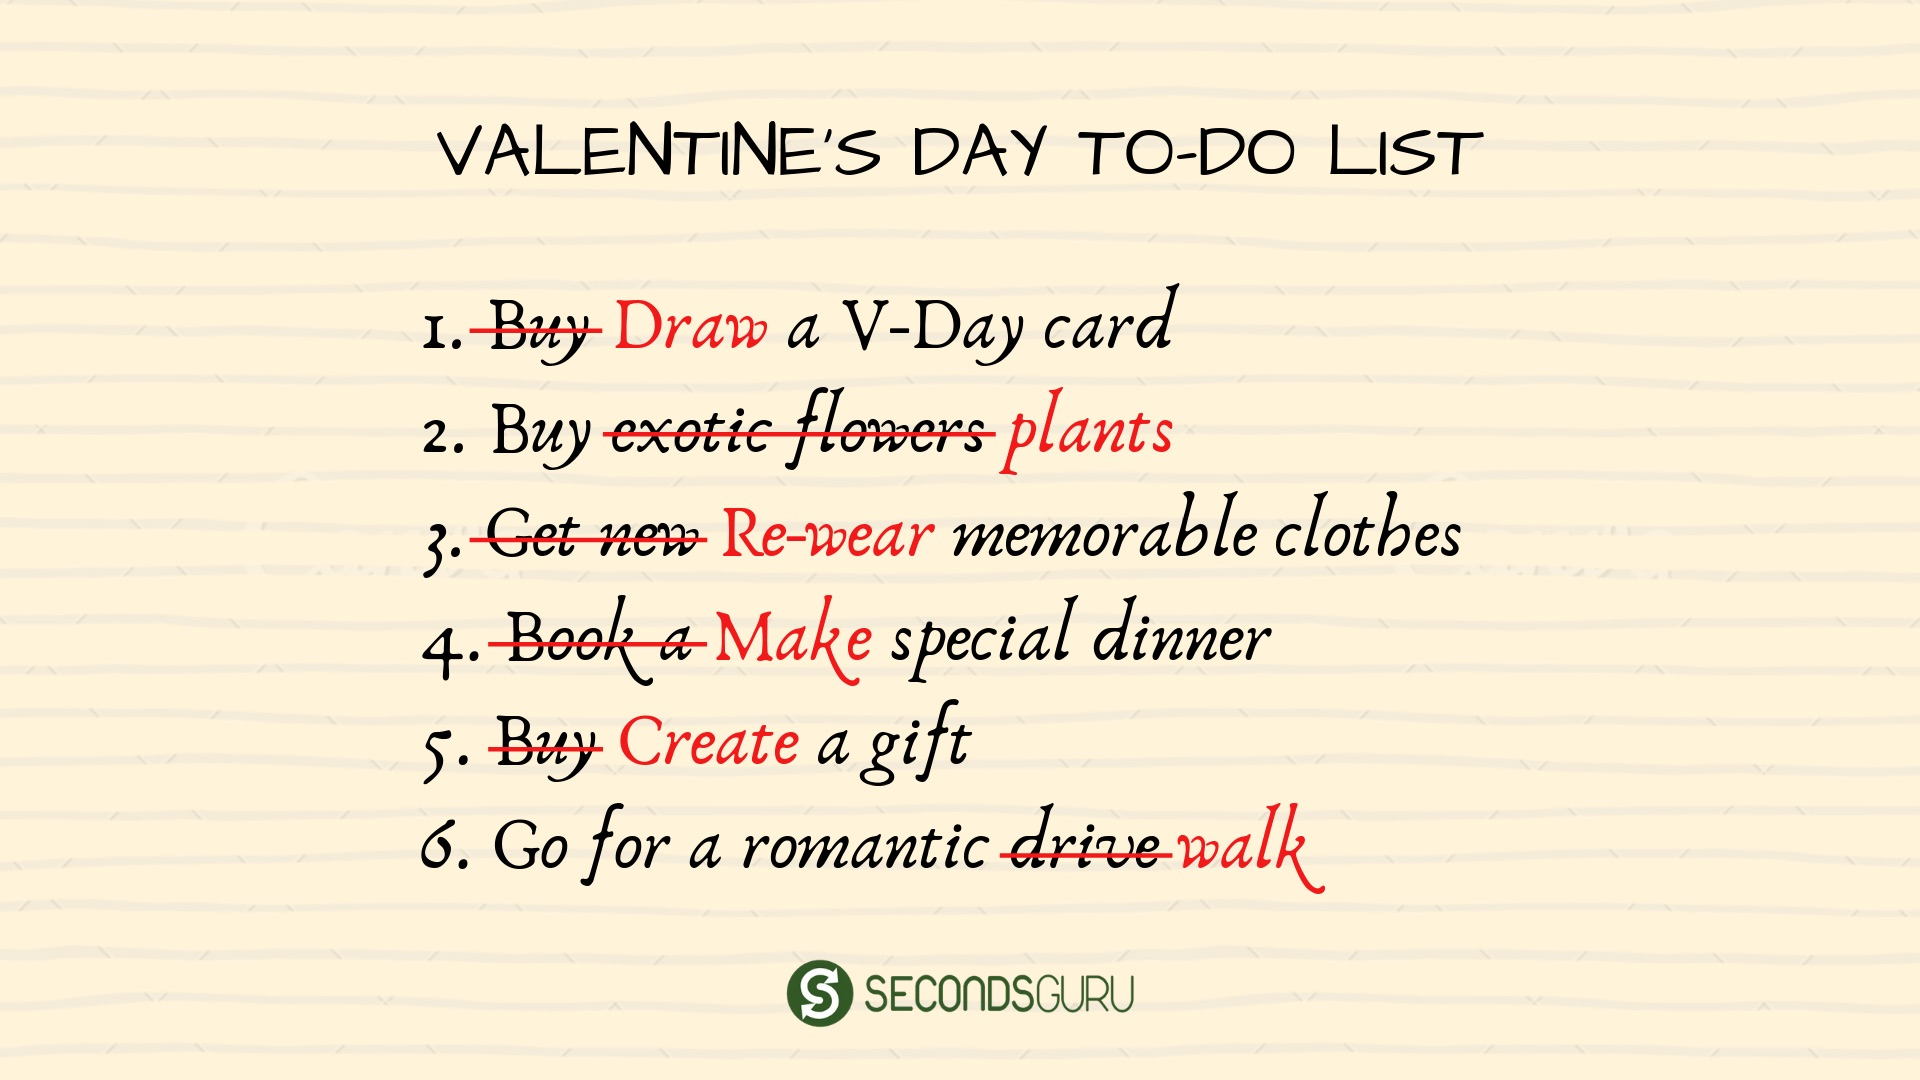 ideas for a special Valentine's day